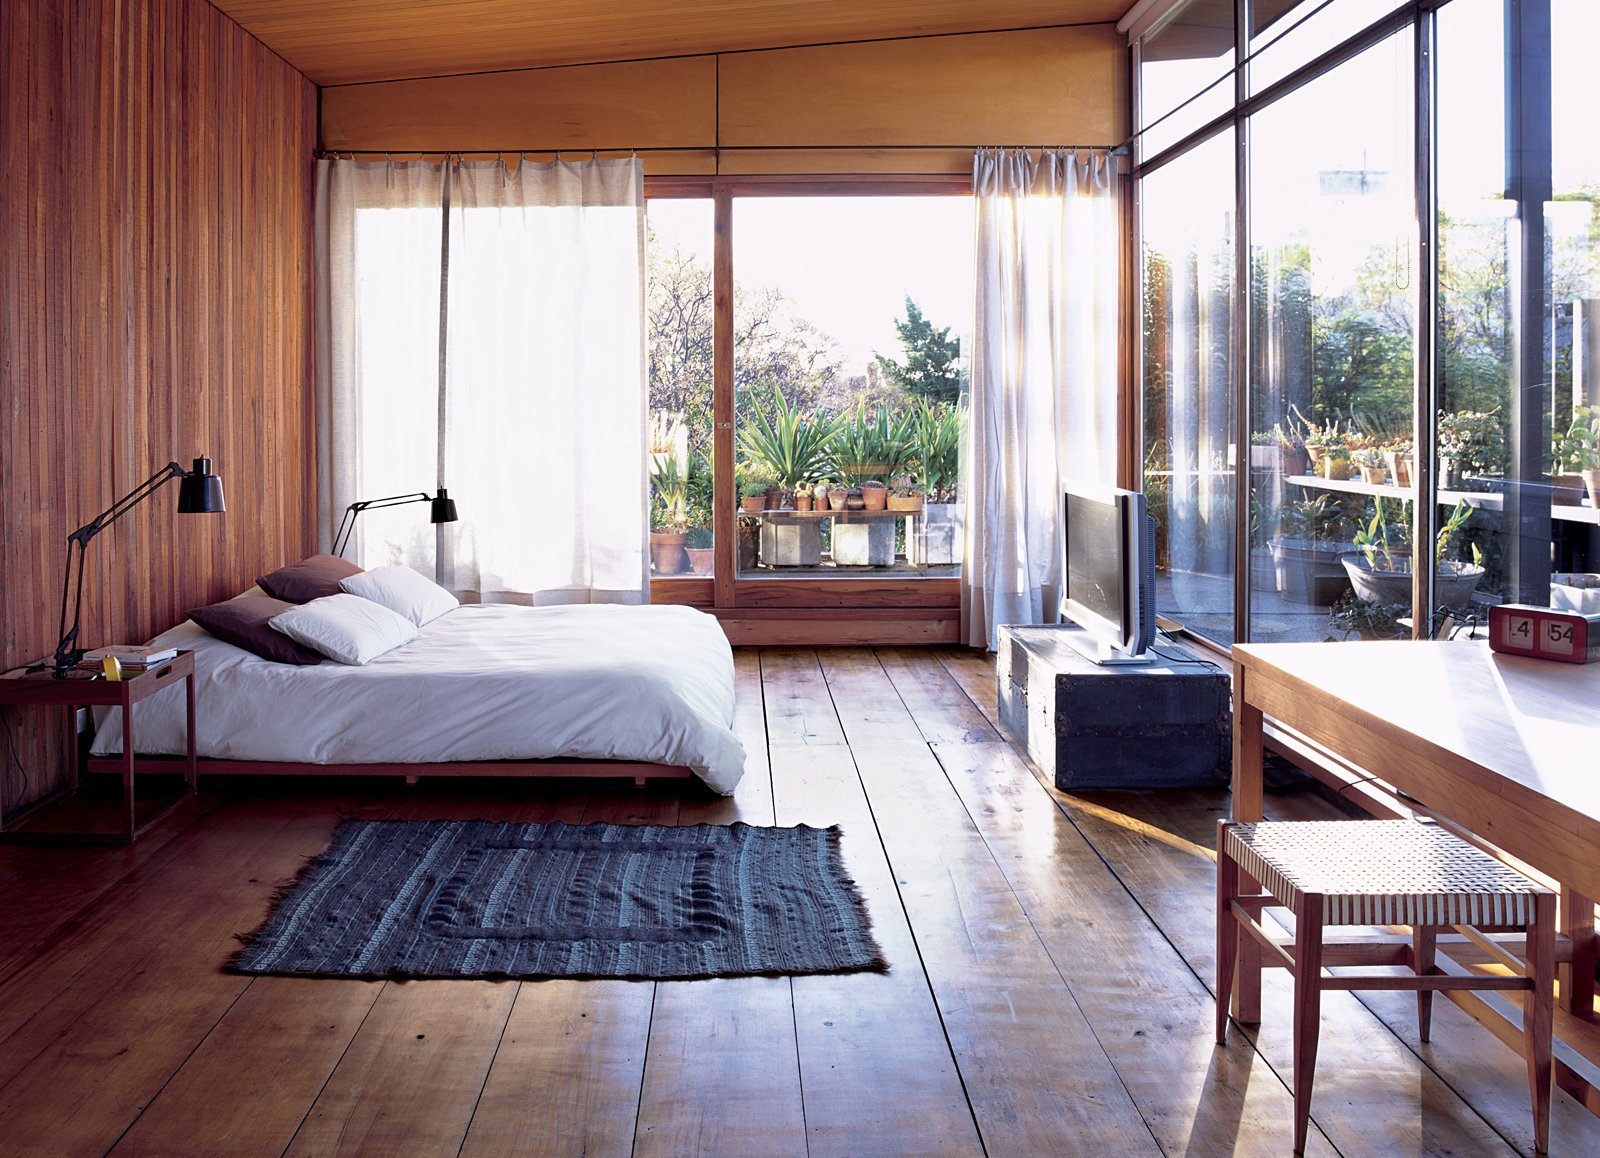 Bedroom, Bed, Medium Hardwood Floor, and Table Lighting A COZY AND MODERN INDOOR-OUTDOOR BEDROOM IN BUENOS AIRES  In Argentinean architect and furniture designer Alejandro Sticotti's bedroom, dappled sunlight and reclaimed-wood floors and walls give the room a warm, peaceful feel.  Bedroom from Net Assets